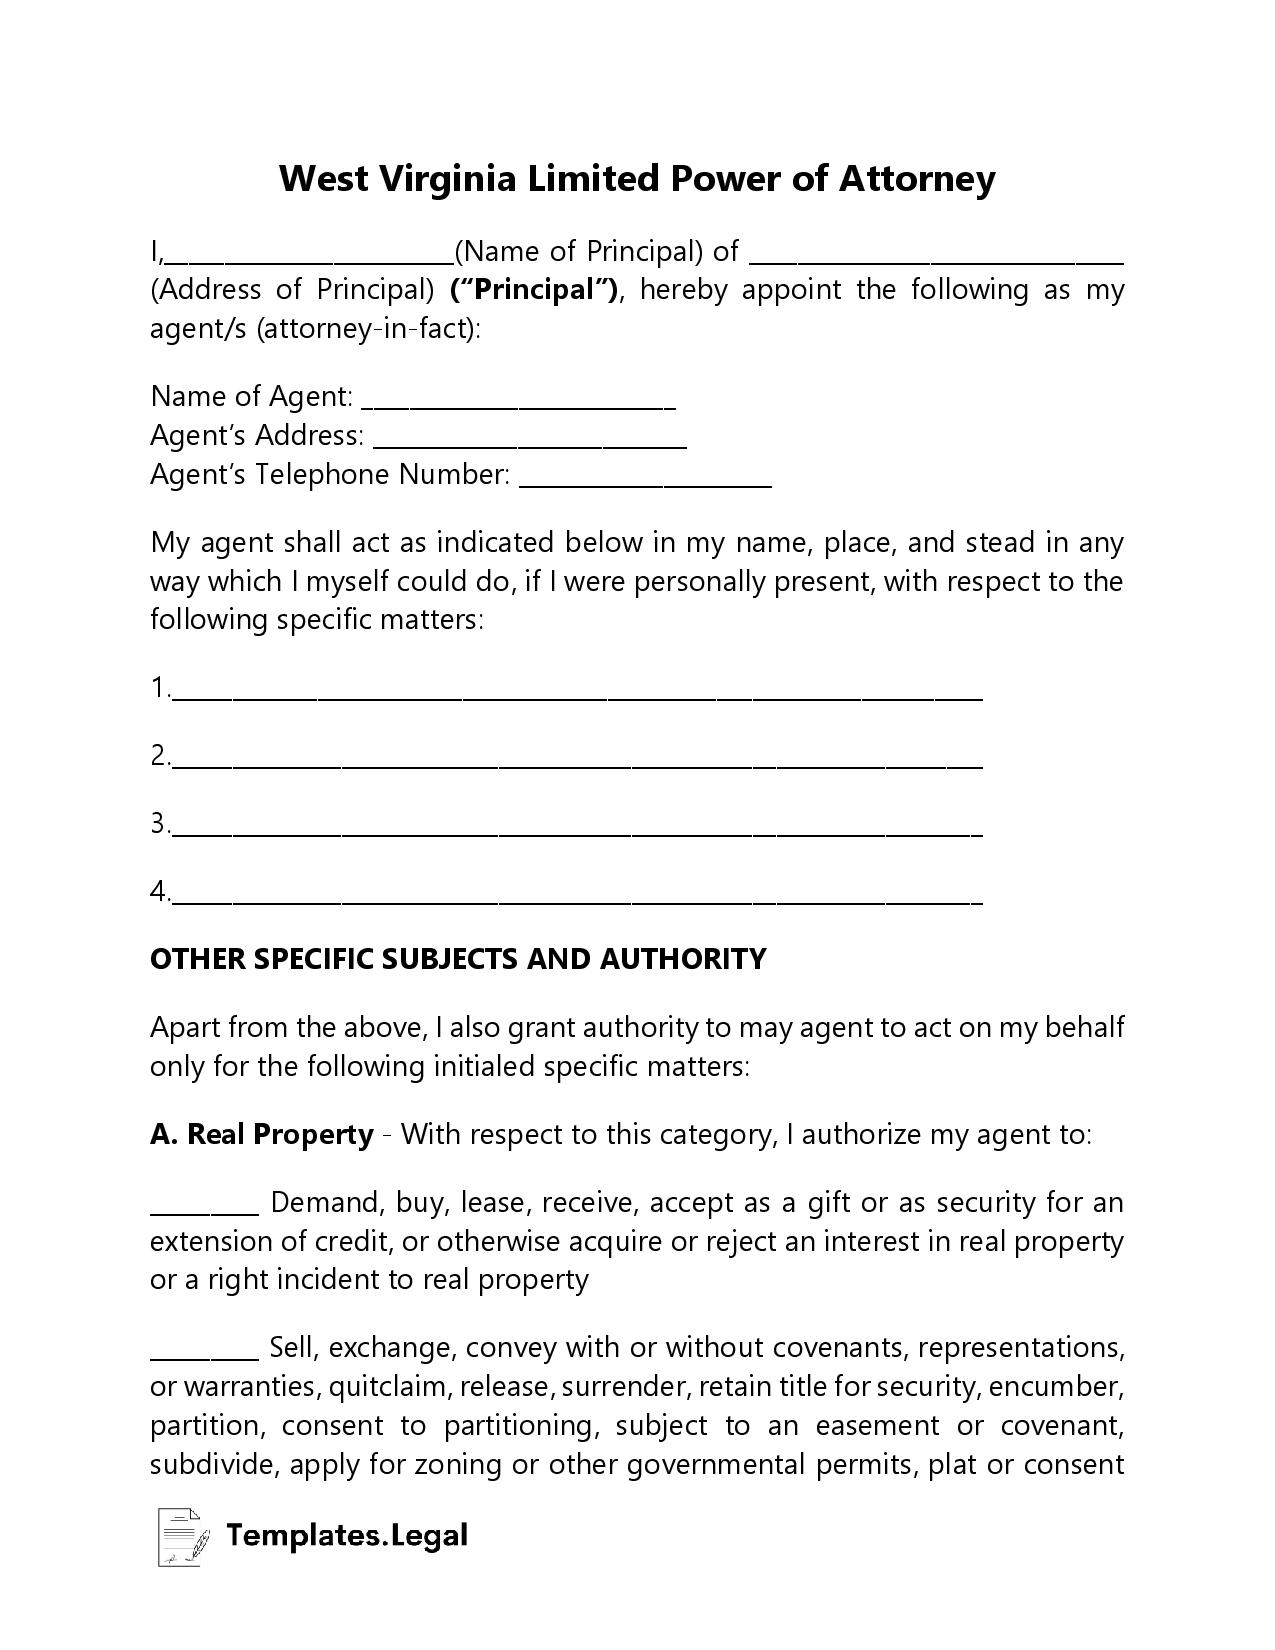 West Virginia Limited Power of Attorney - Templates.Legal